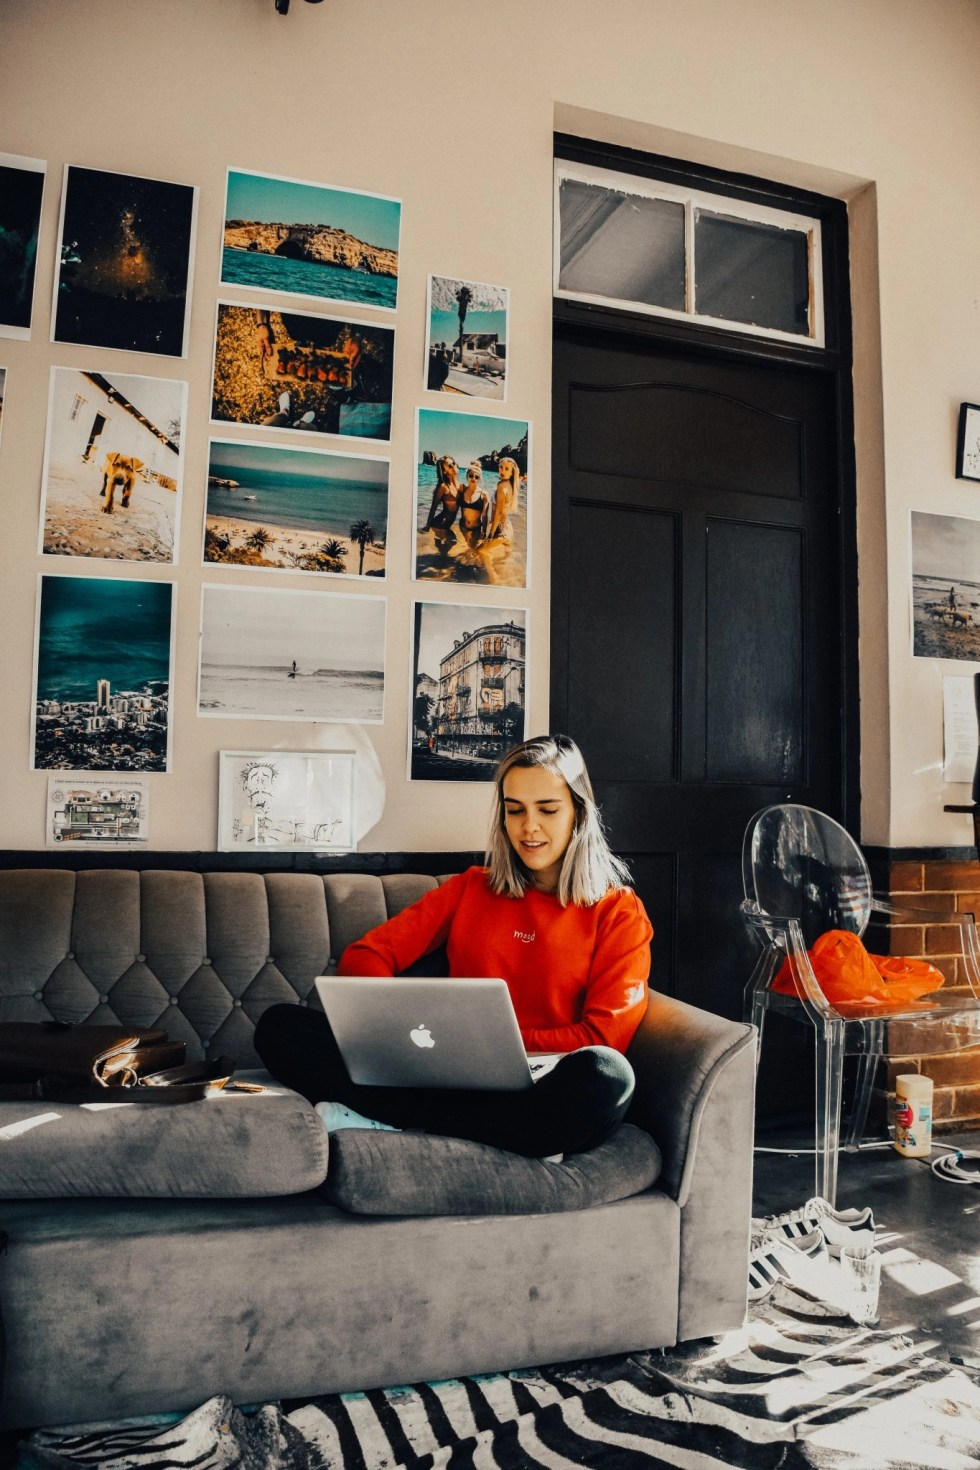 Young woman with straight gray hair in red sweater sitting on grey sofa in room with tall black door with glass on top and several large unframed photos on the wall behind her looking for side hustle ideas